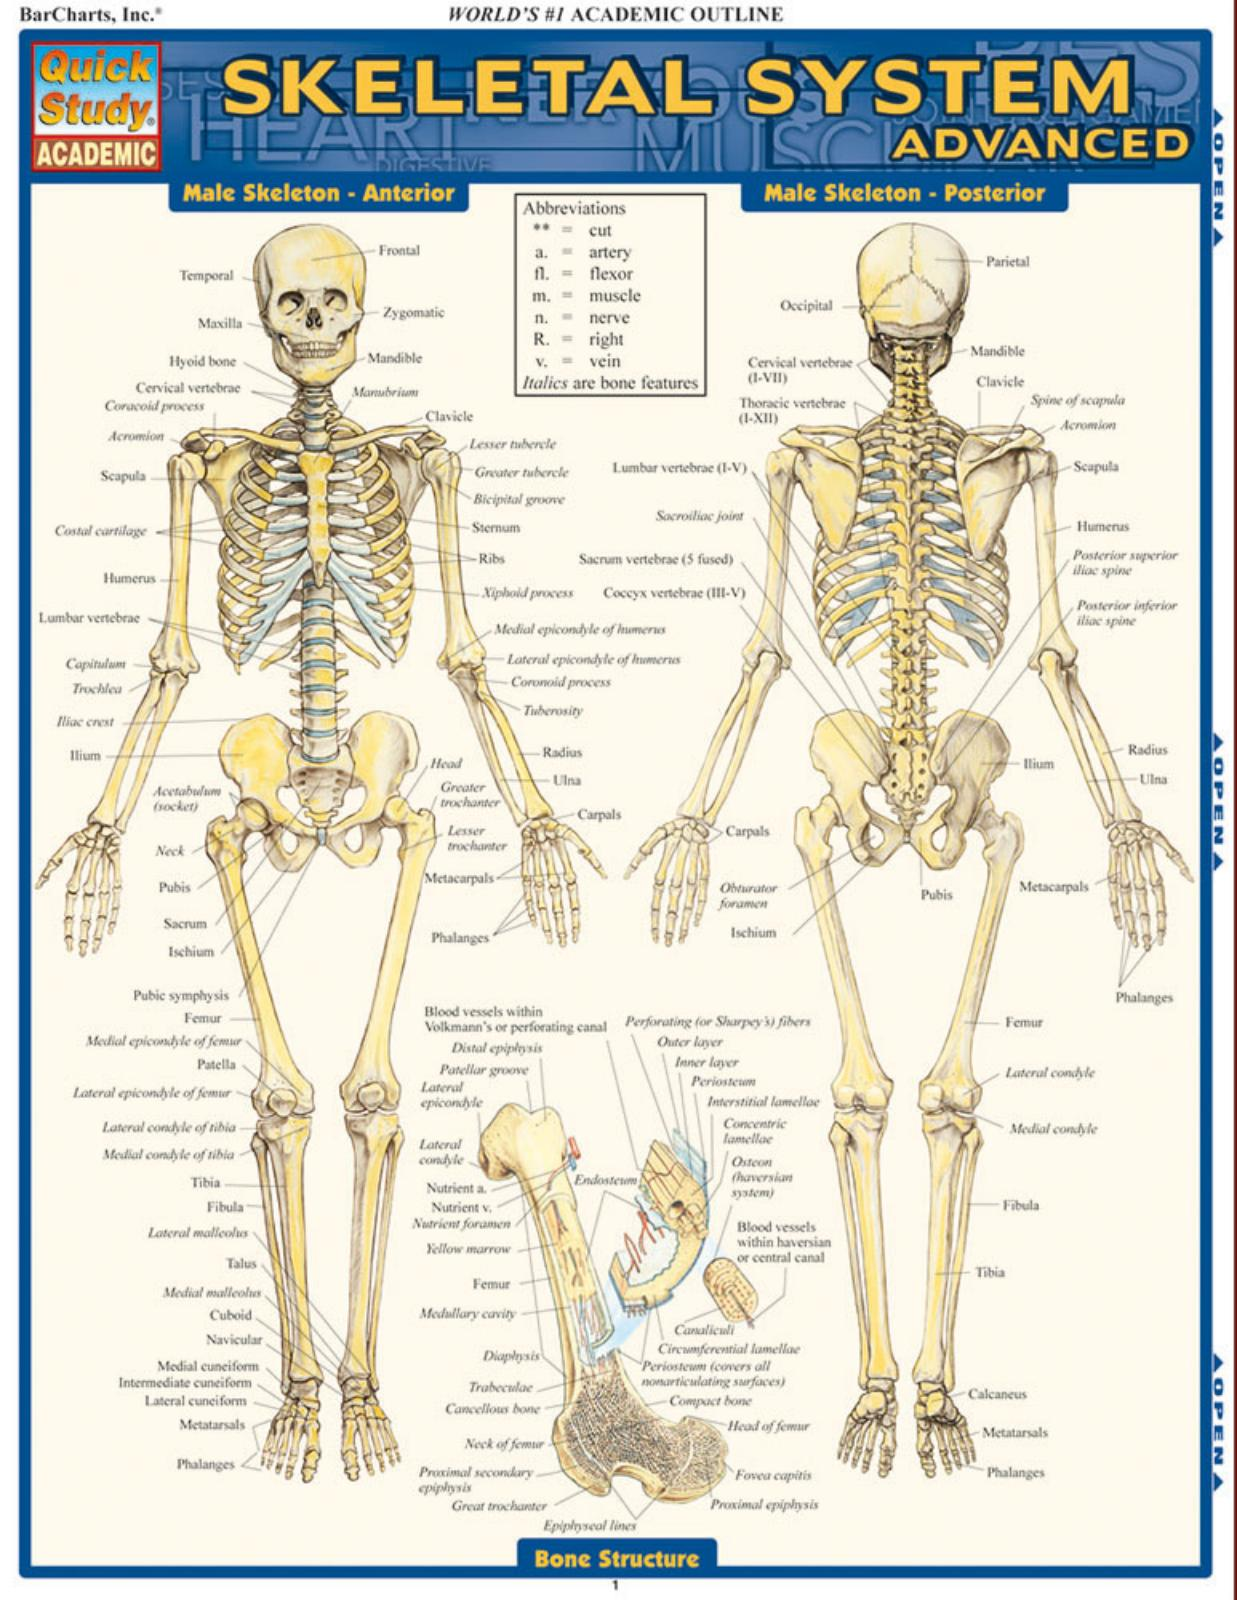 SKELETAL SYSTEM  ADVANCED